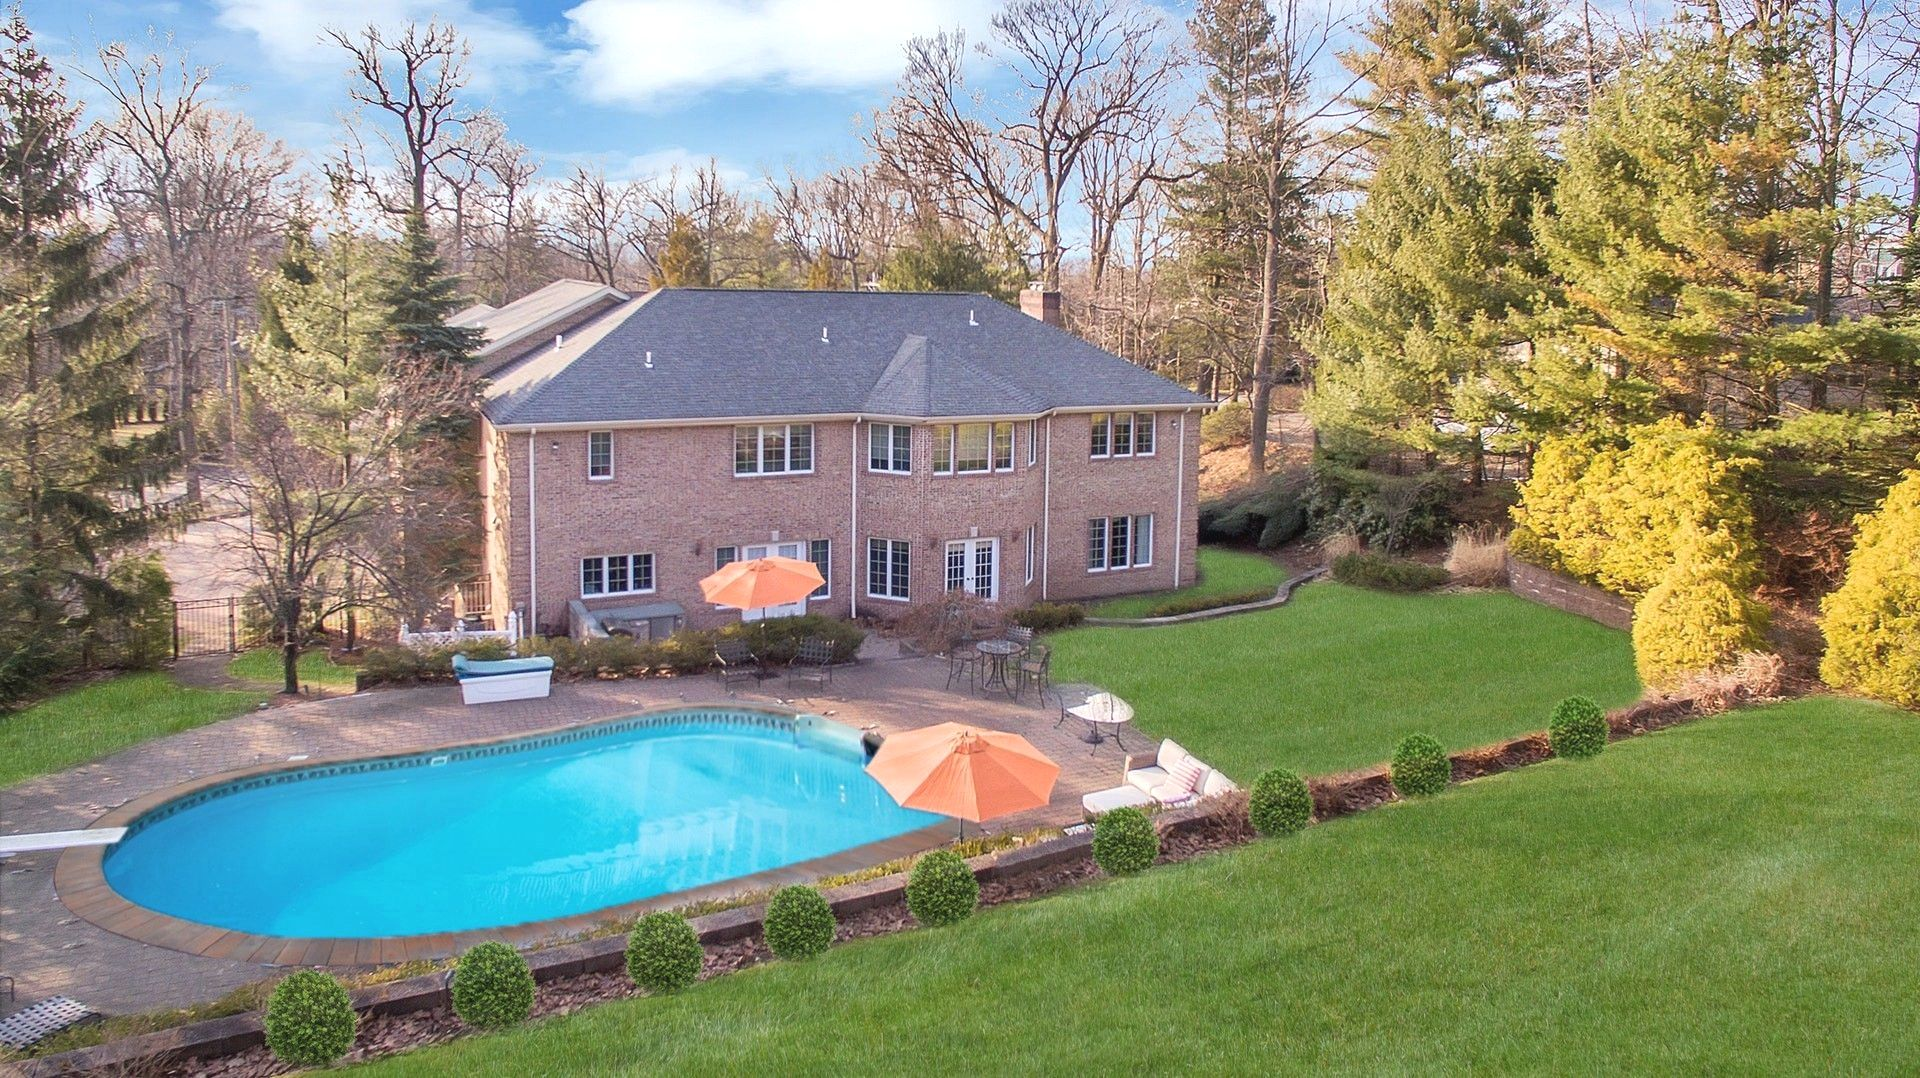 Single Family Home for Sale at Elegant Colonial 290 Devon Road, Tenafly, New Jersey 07670 United States